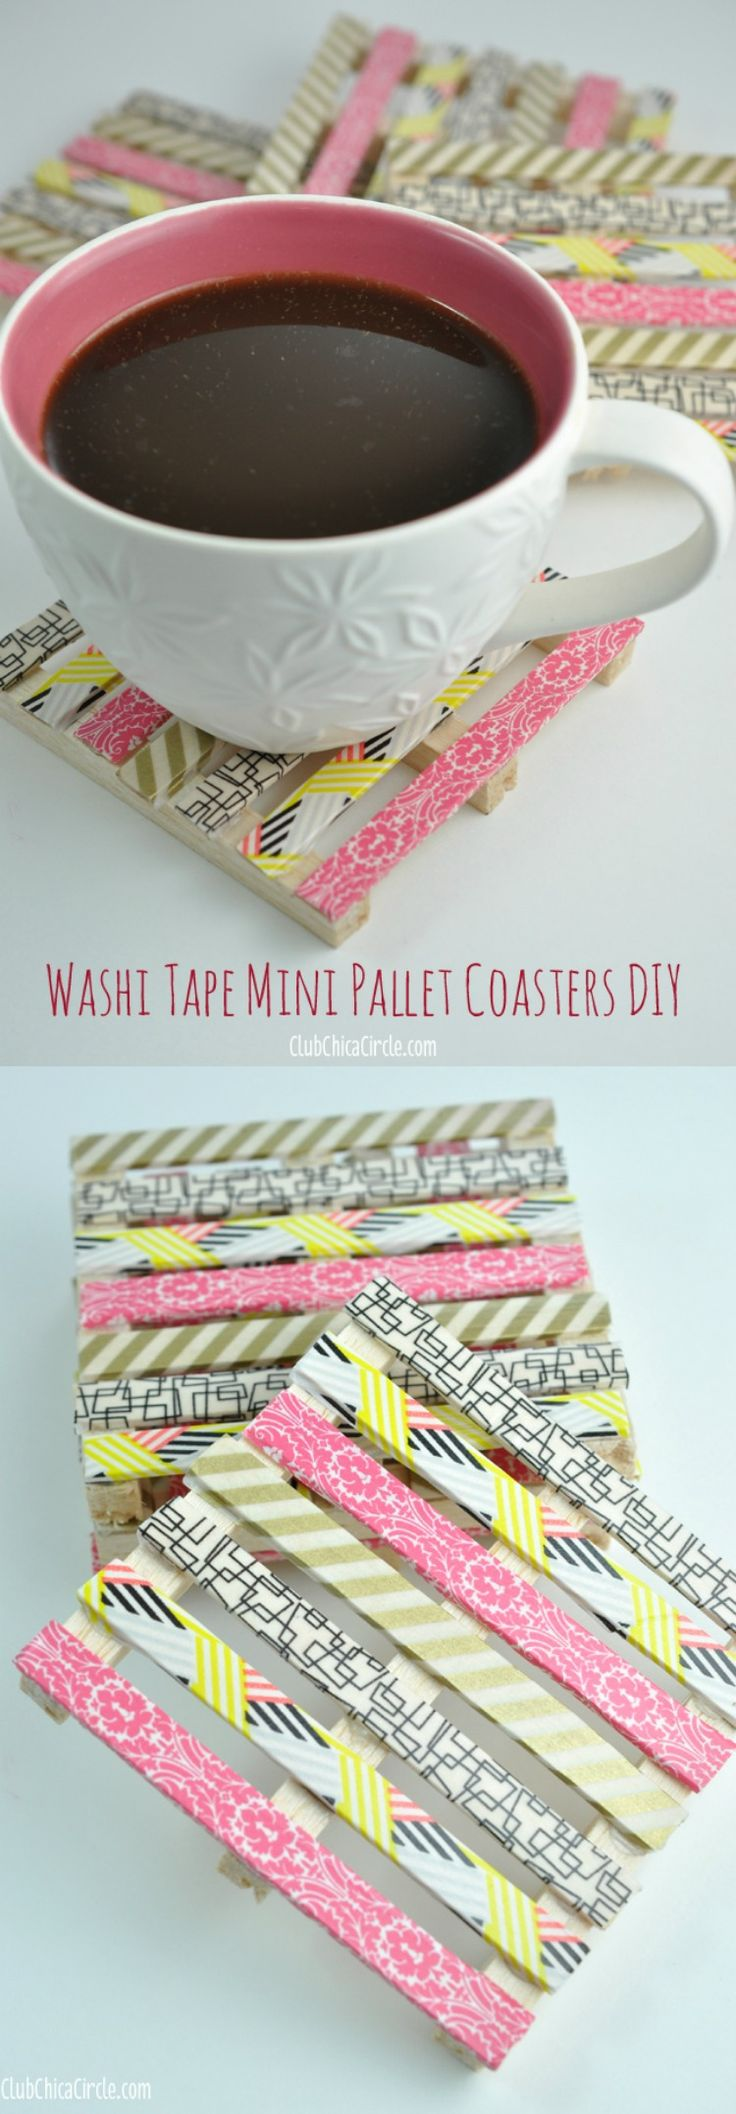 Pauline shows you how to create mini wood pallet DIY coasters using popsicle sticks, small wood piece and washi tape. So cute and easy! Mensen hebben deze pin al heel vaak opgeslagen leuk is dat